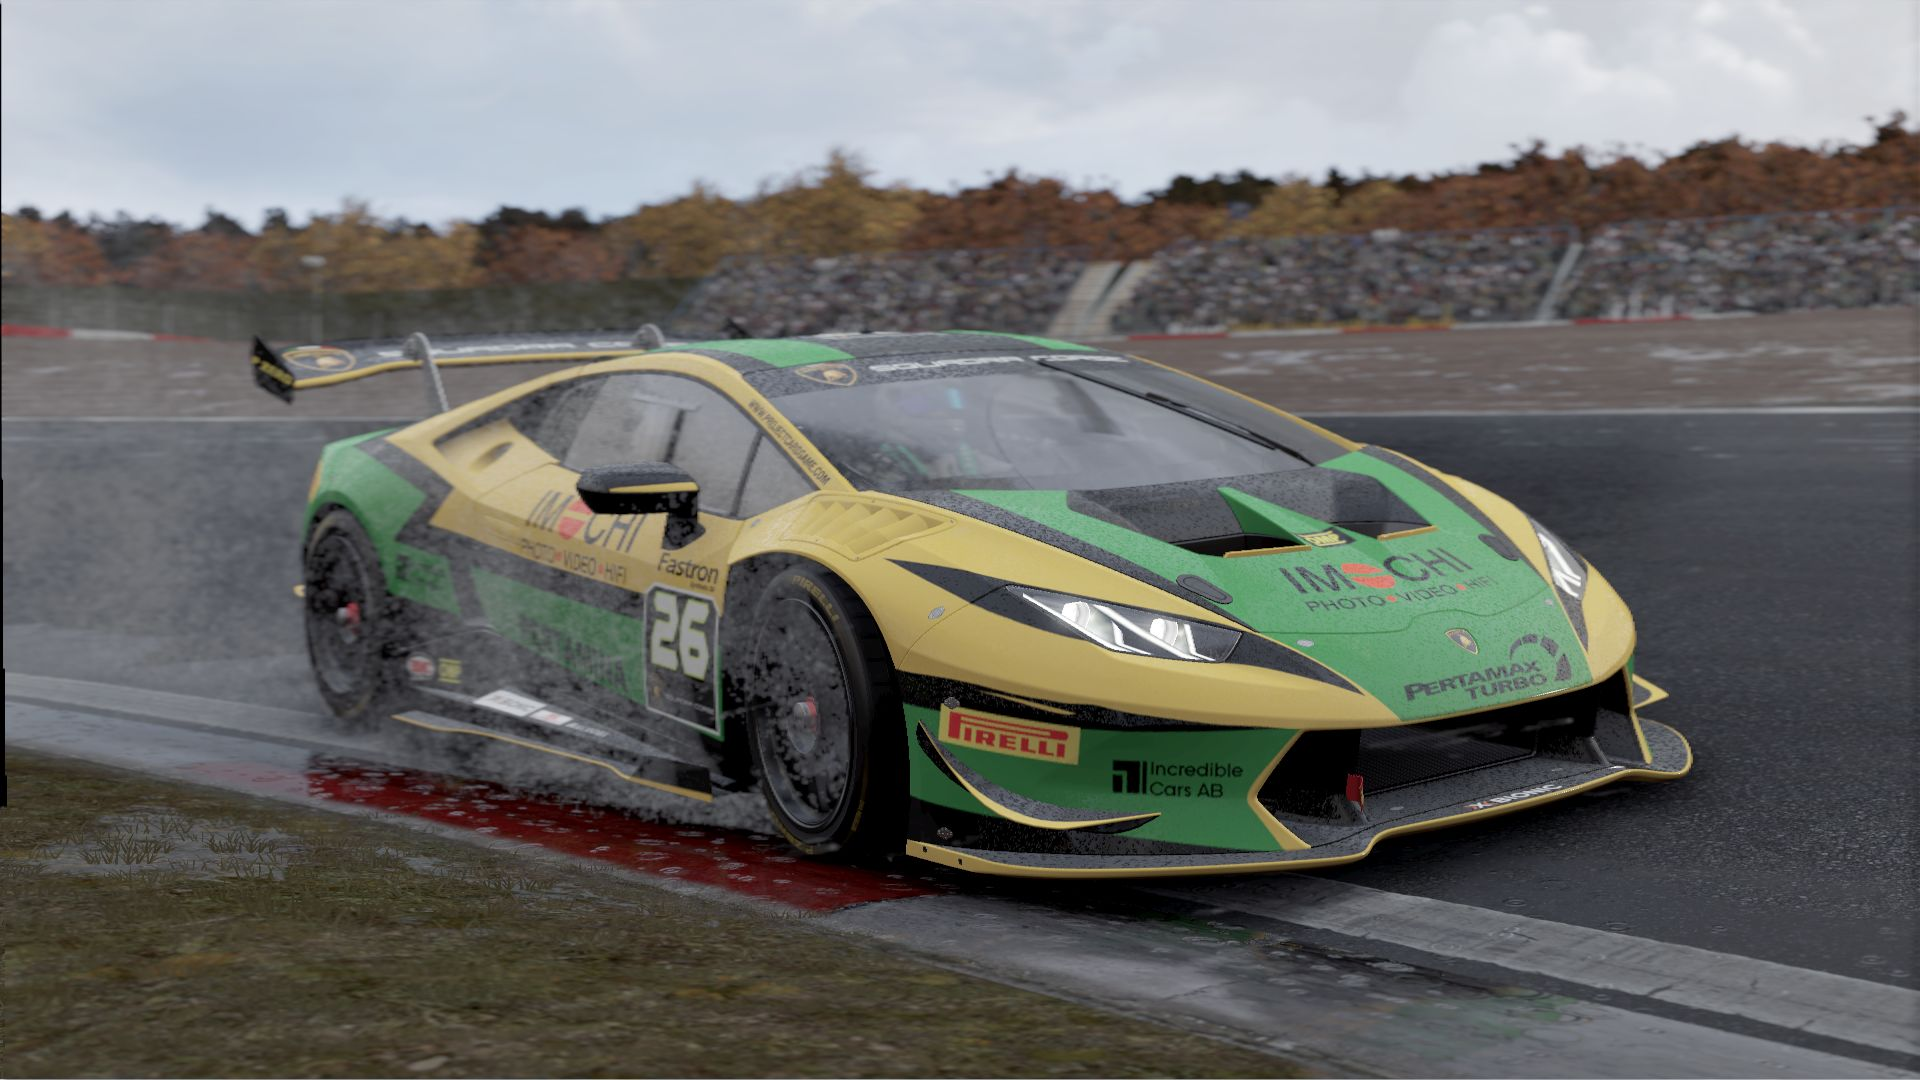 project cars 2 getting xbox one x enhanced xbox one news at new game network. Black Bedroom Furniture Sets. Home Design Ideas